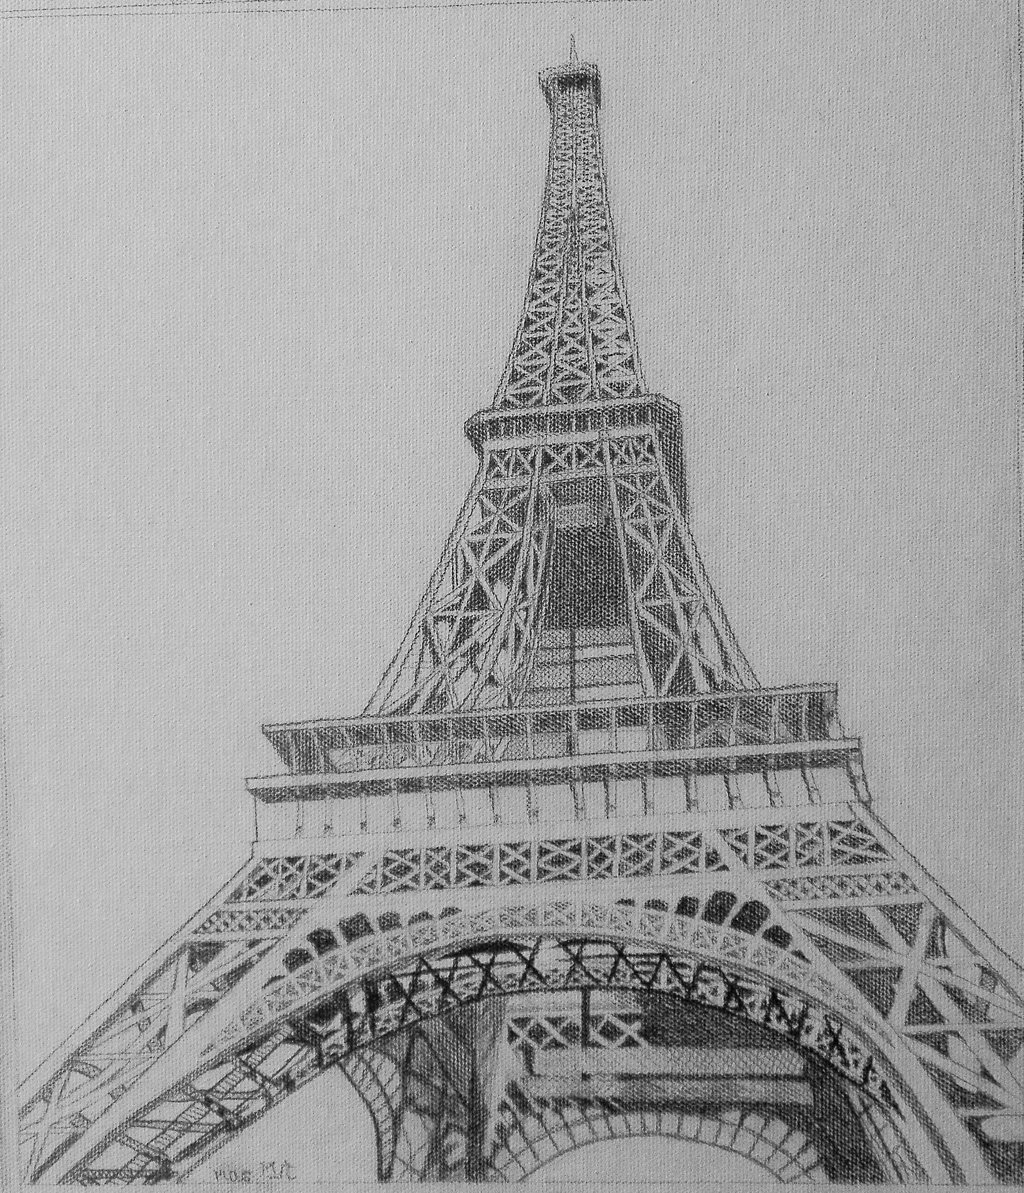 pencil sketch of eiffel tower eiffel tower sketch images stock photos vectors of tower eiffel sketch pencil